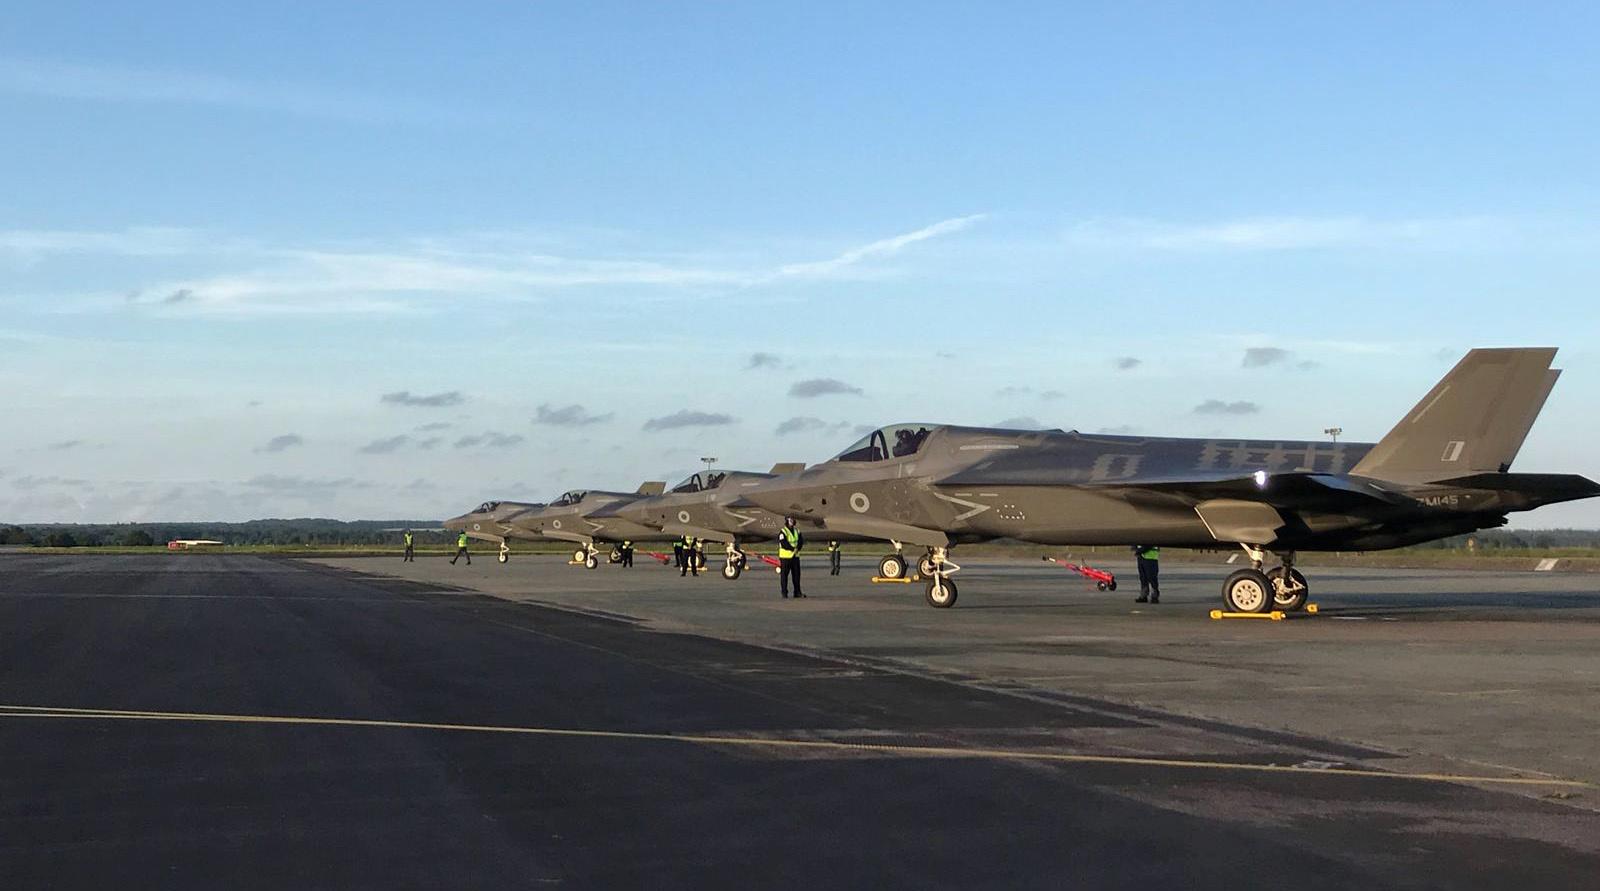 The Royal Air Force's first delivery of F35B aircraft fly from Marine Corps Air Station Beaufort in the U.S. towards their new base RAF Marnham, Britain. (REUTERS)